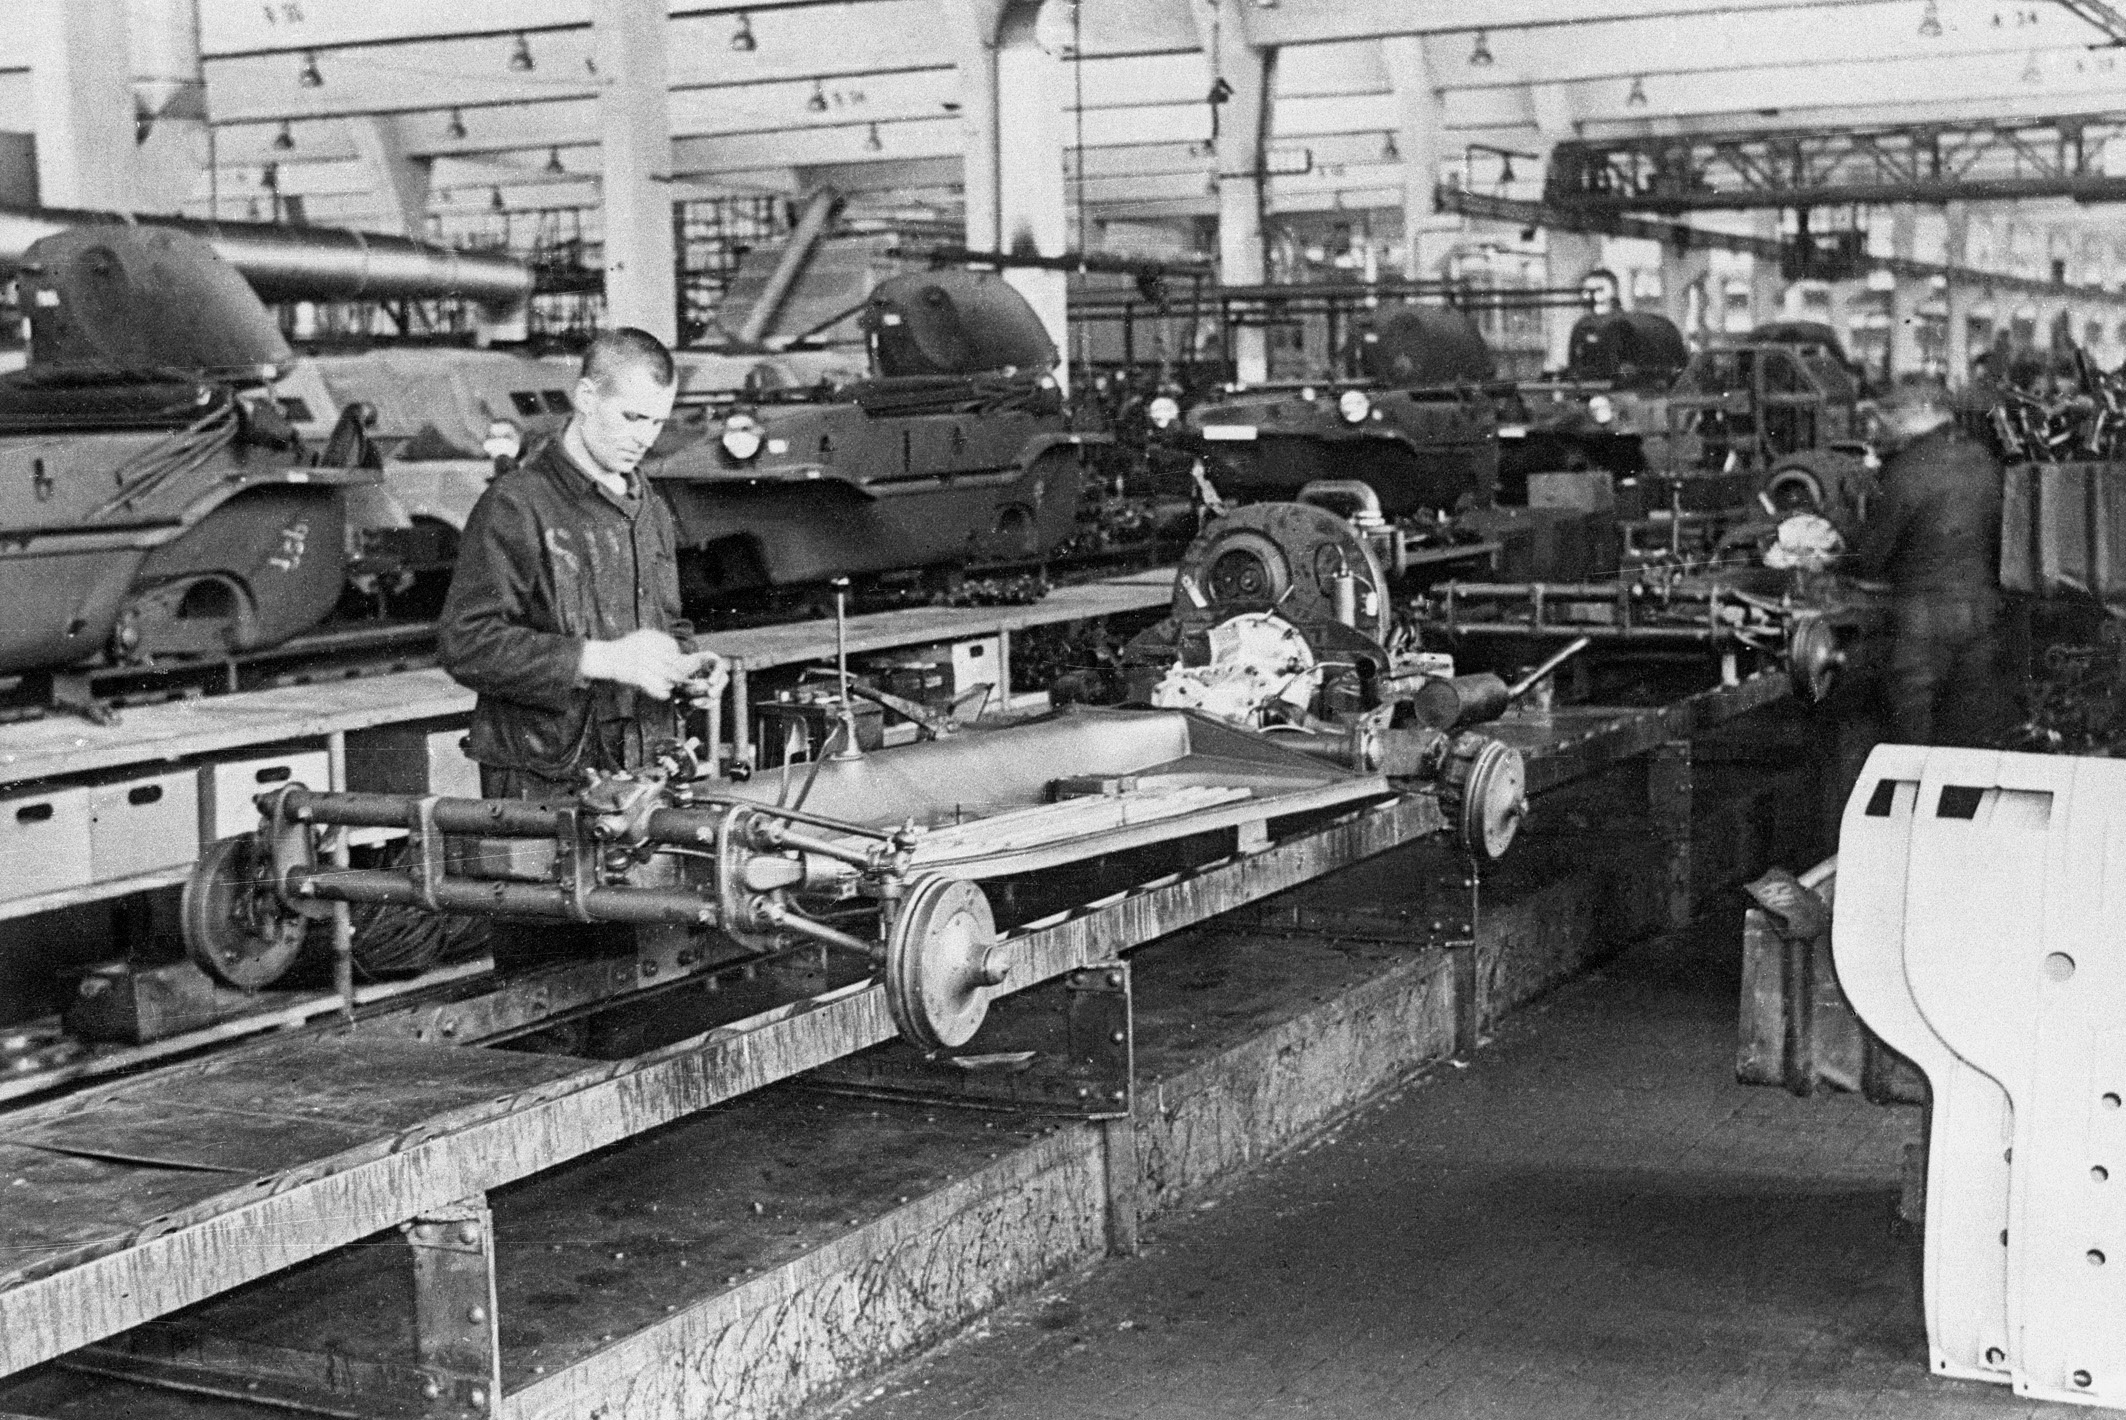 Soviet forced laborers on the Schwimmwagen assembly line during World War II.